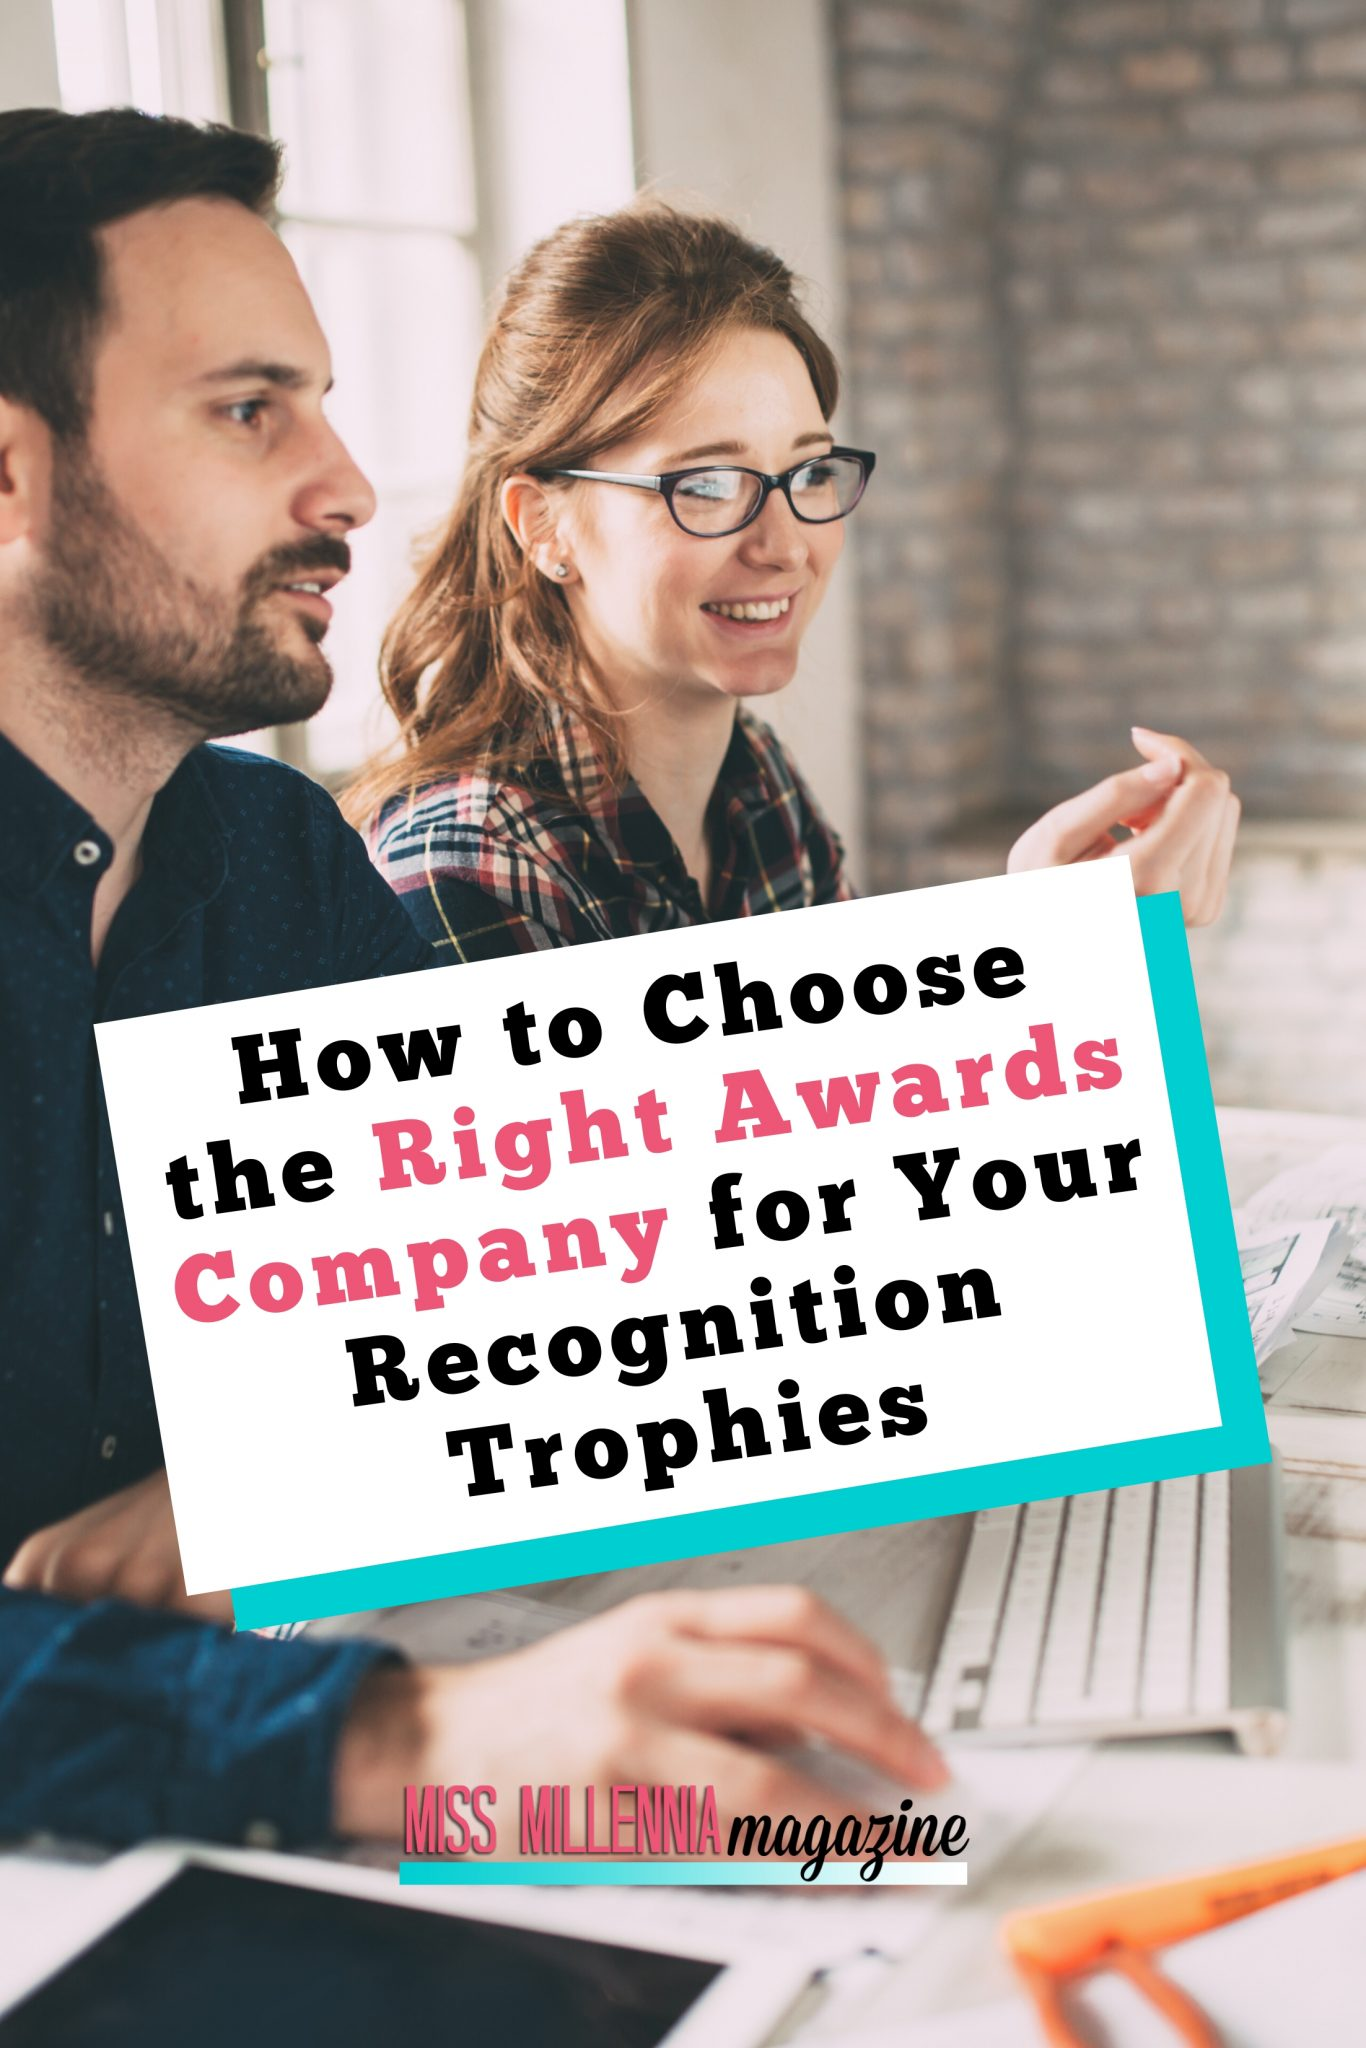 How to Choose the Right Awards Company for Your Recognition Trophies